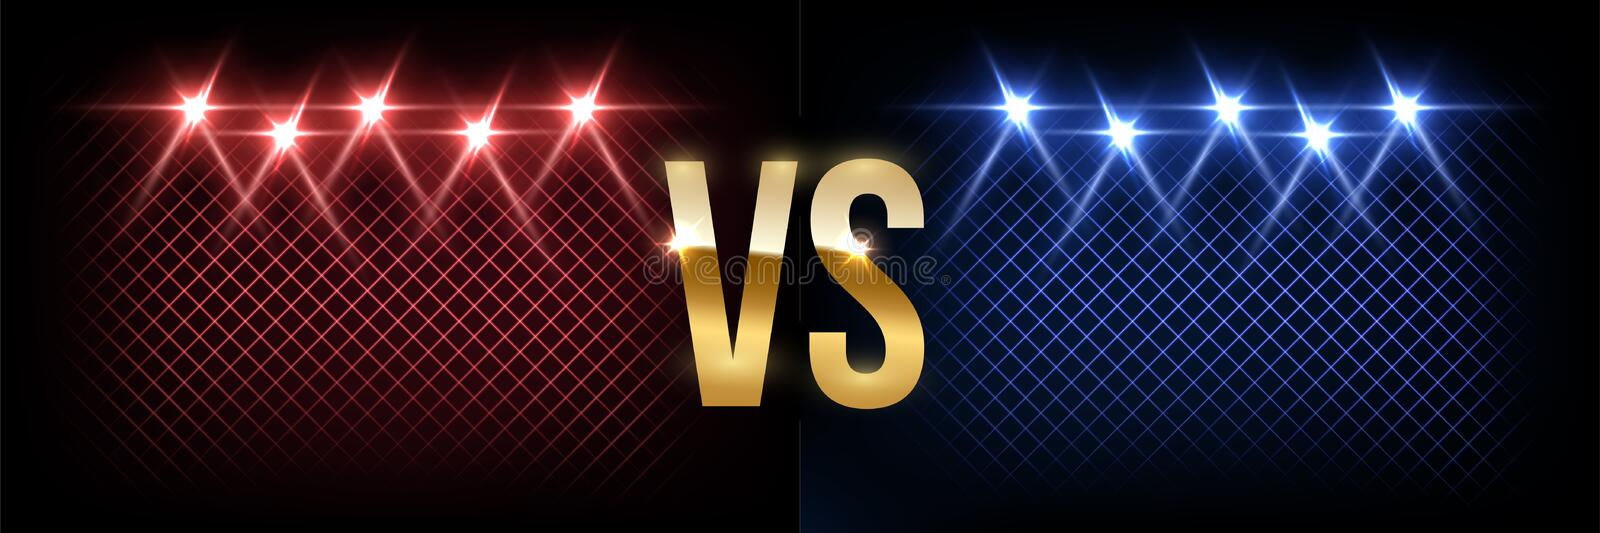 Battle vector banner concept. Girls and boys competition illustration with glowing versus symbol and spotlights. Night vector illustration